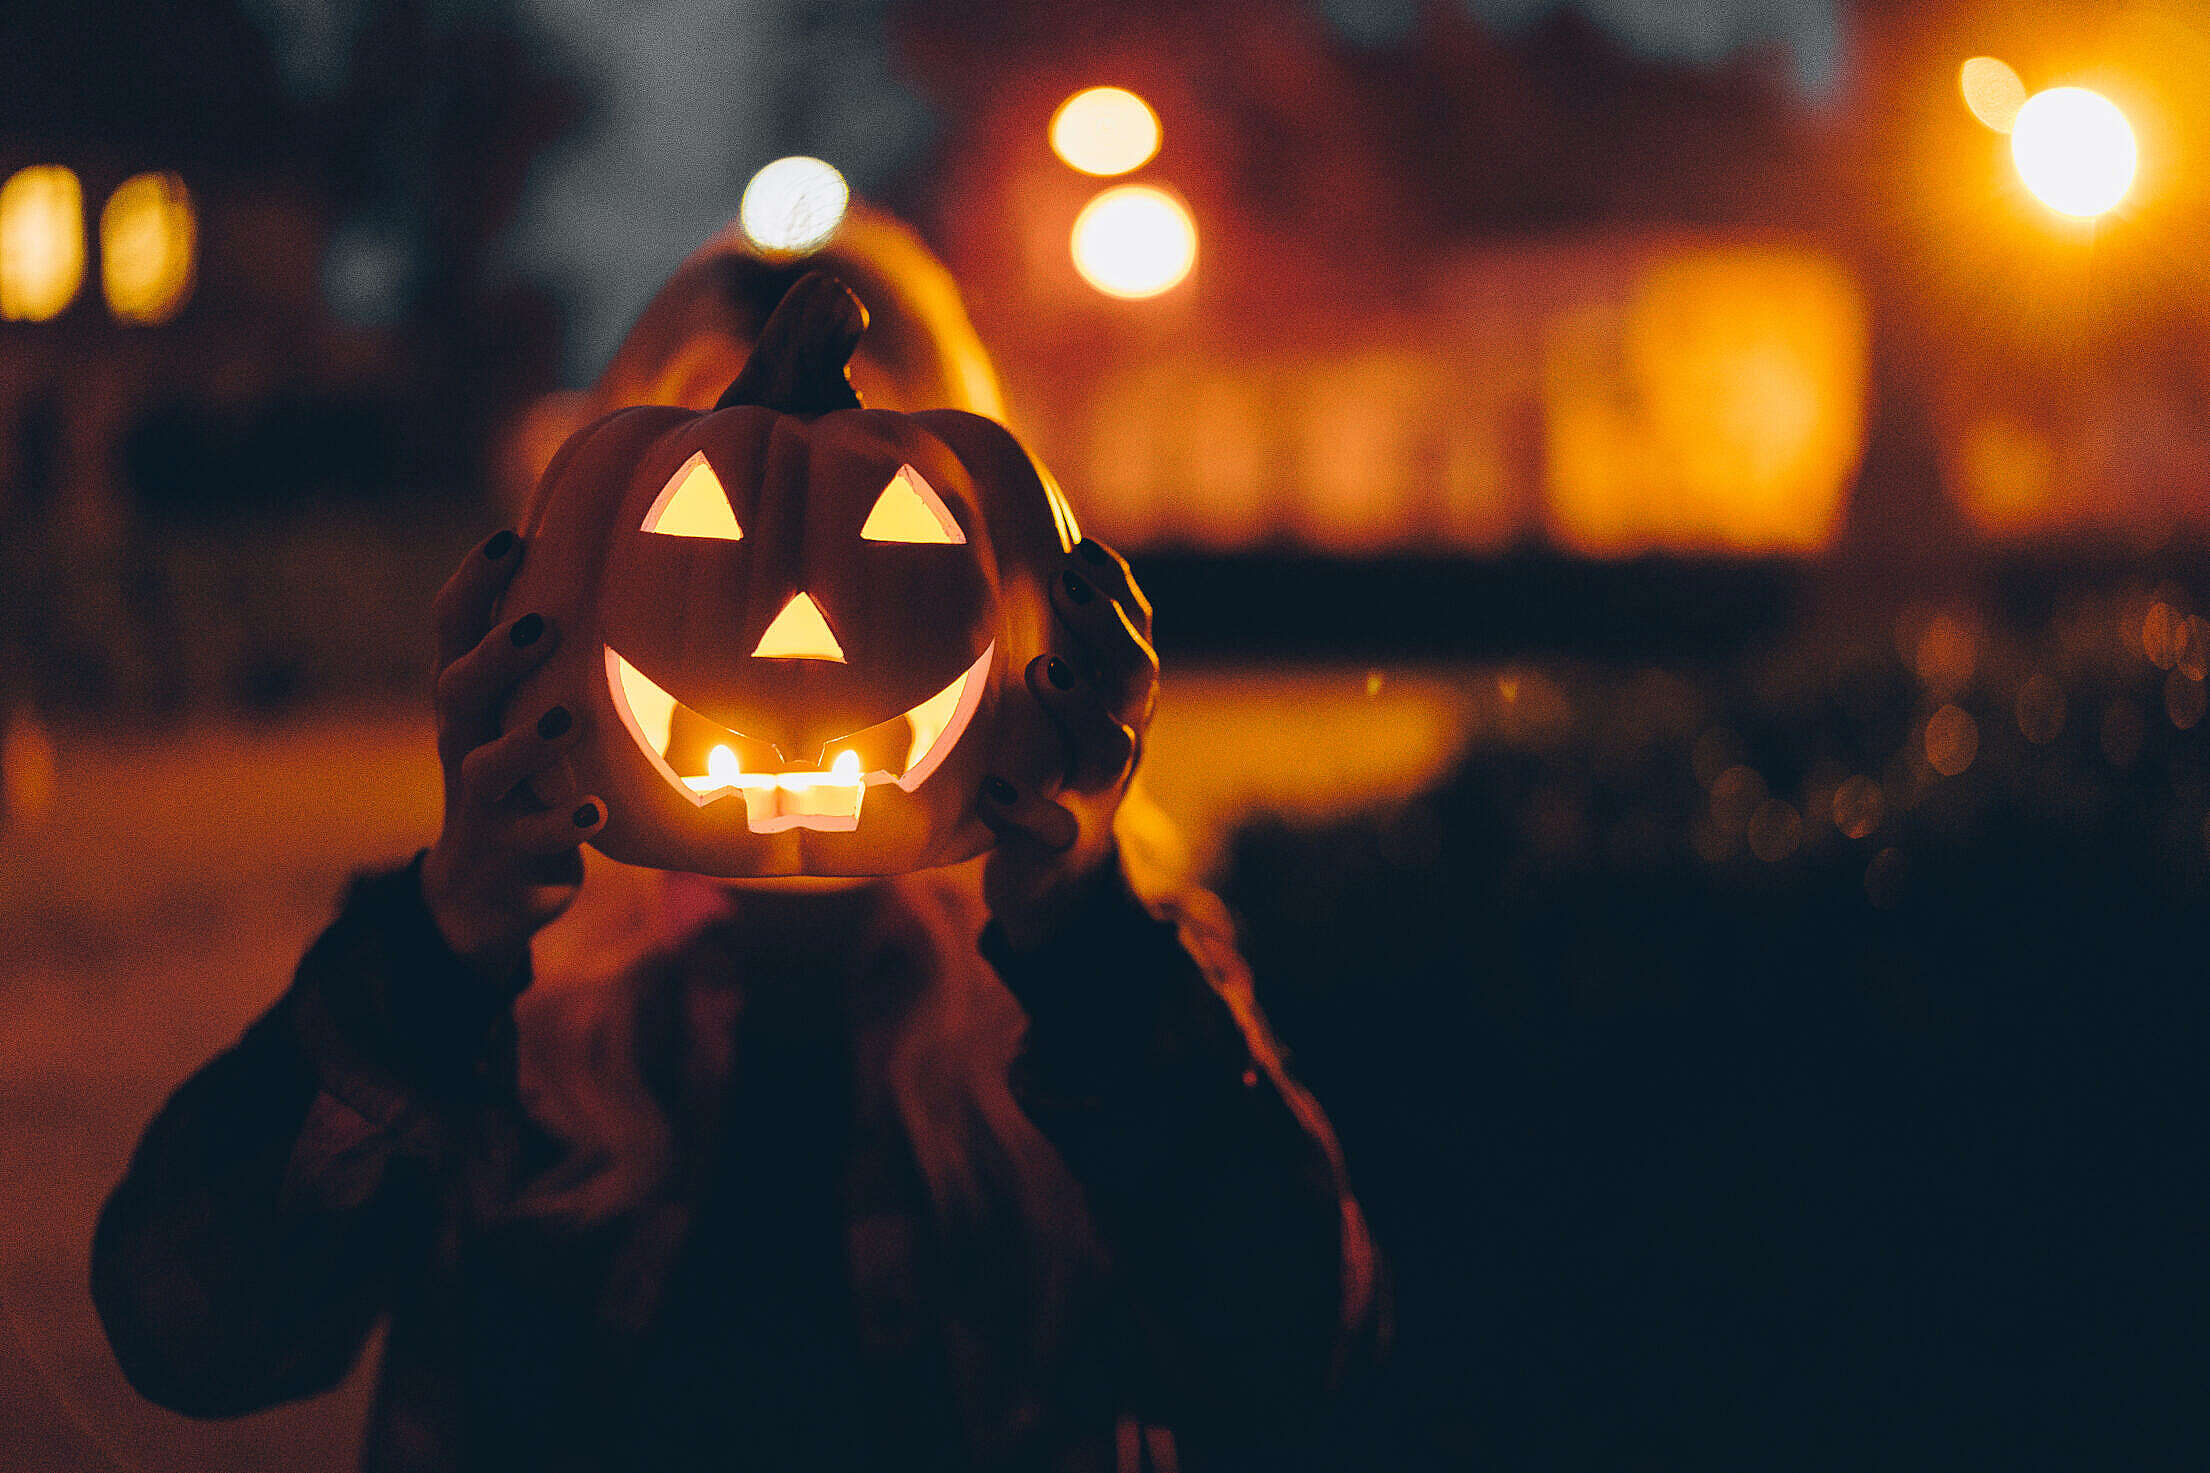 Woman Holding a Halloween Pumpkin in front of her Face at Night Free Stock Photo